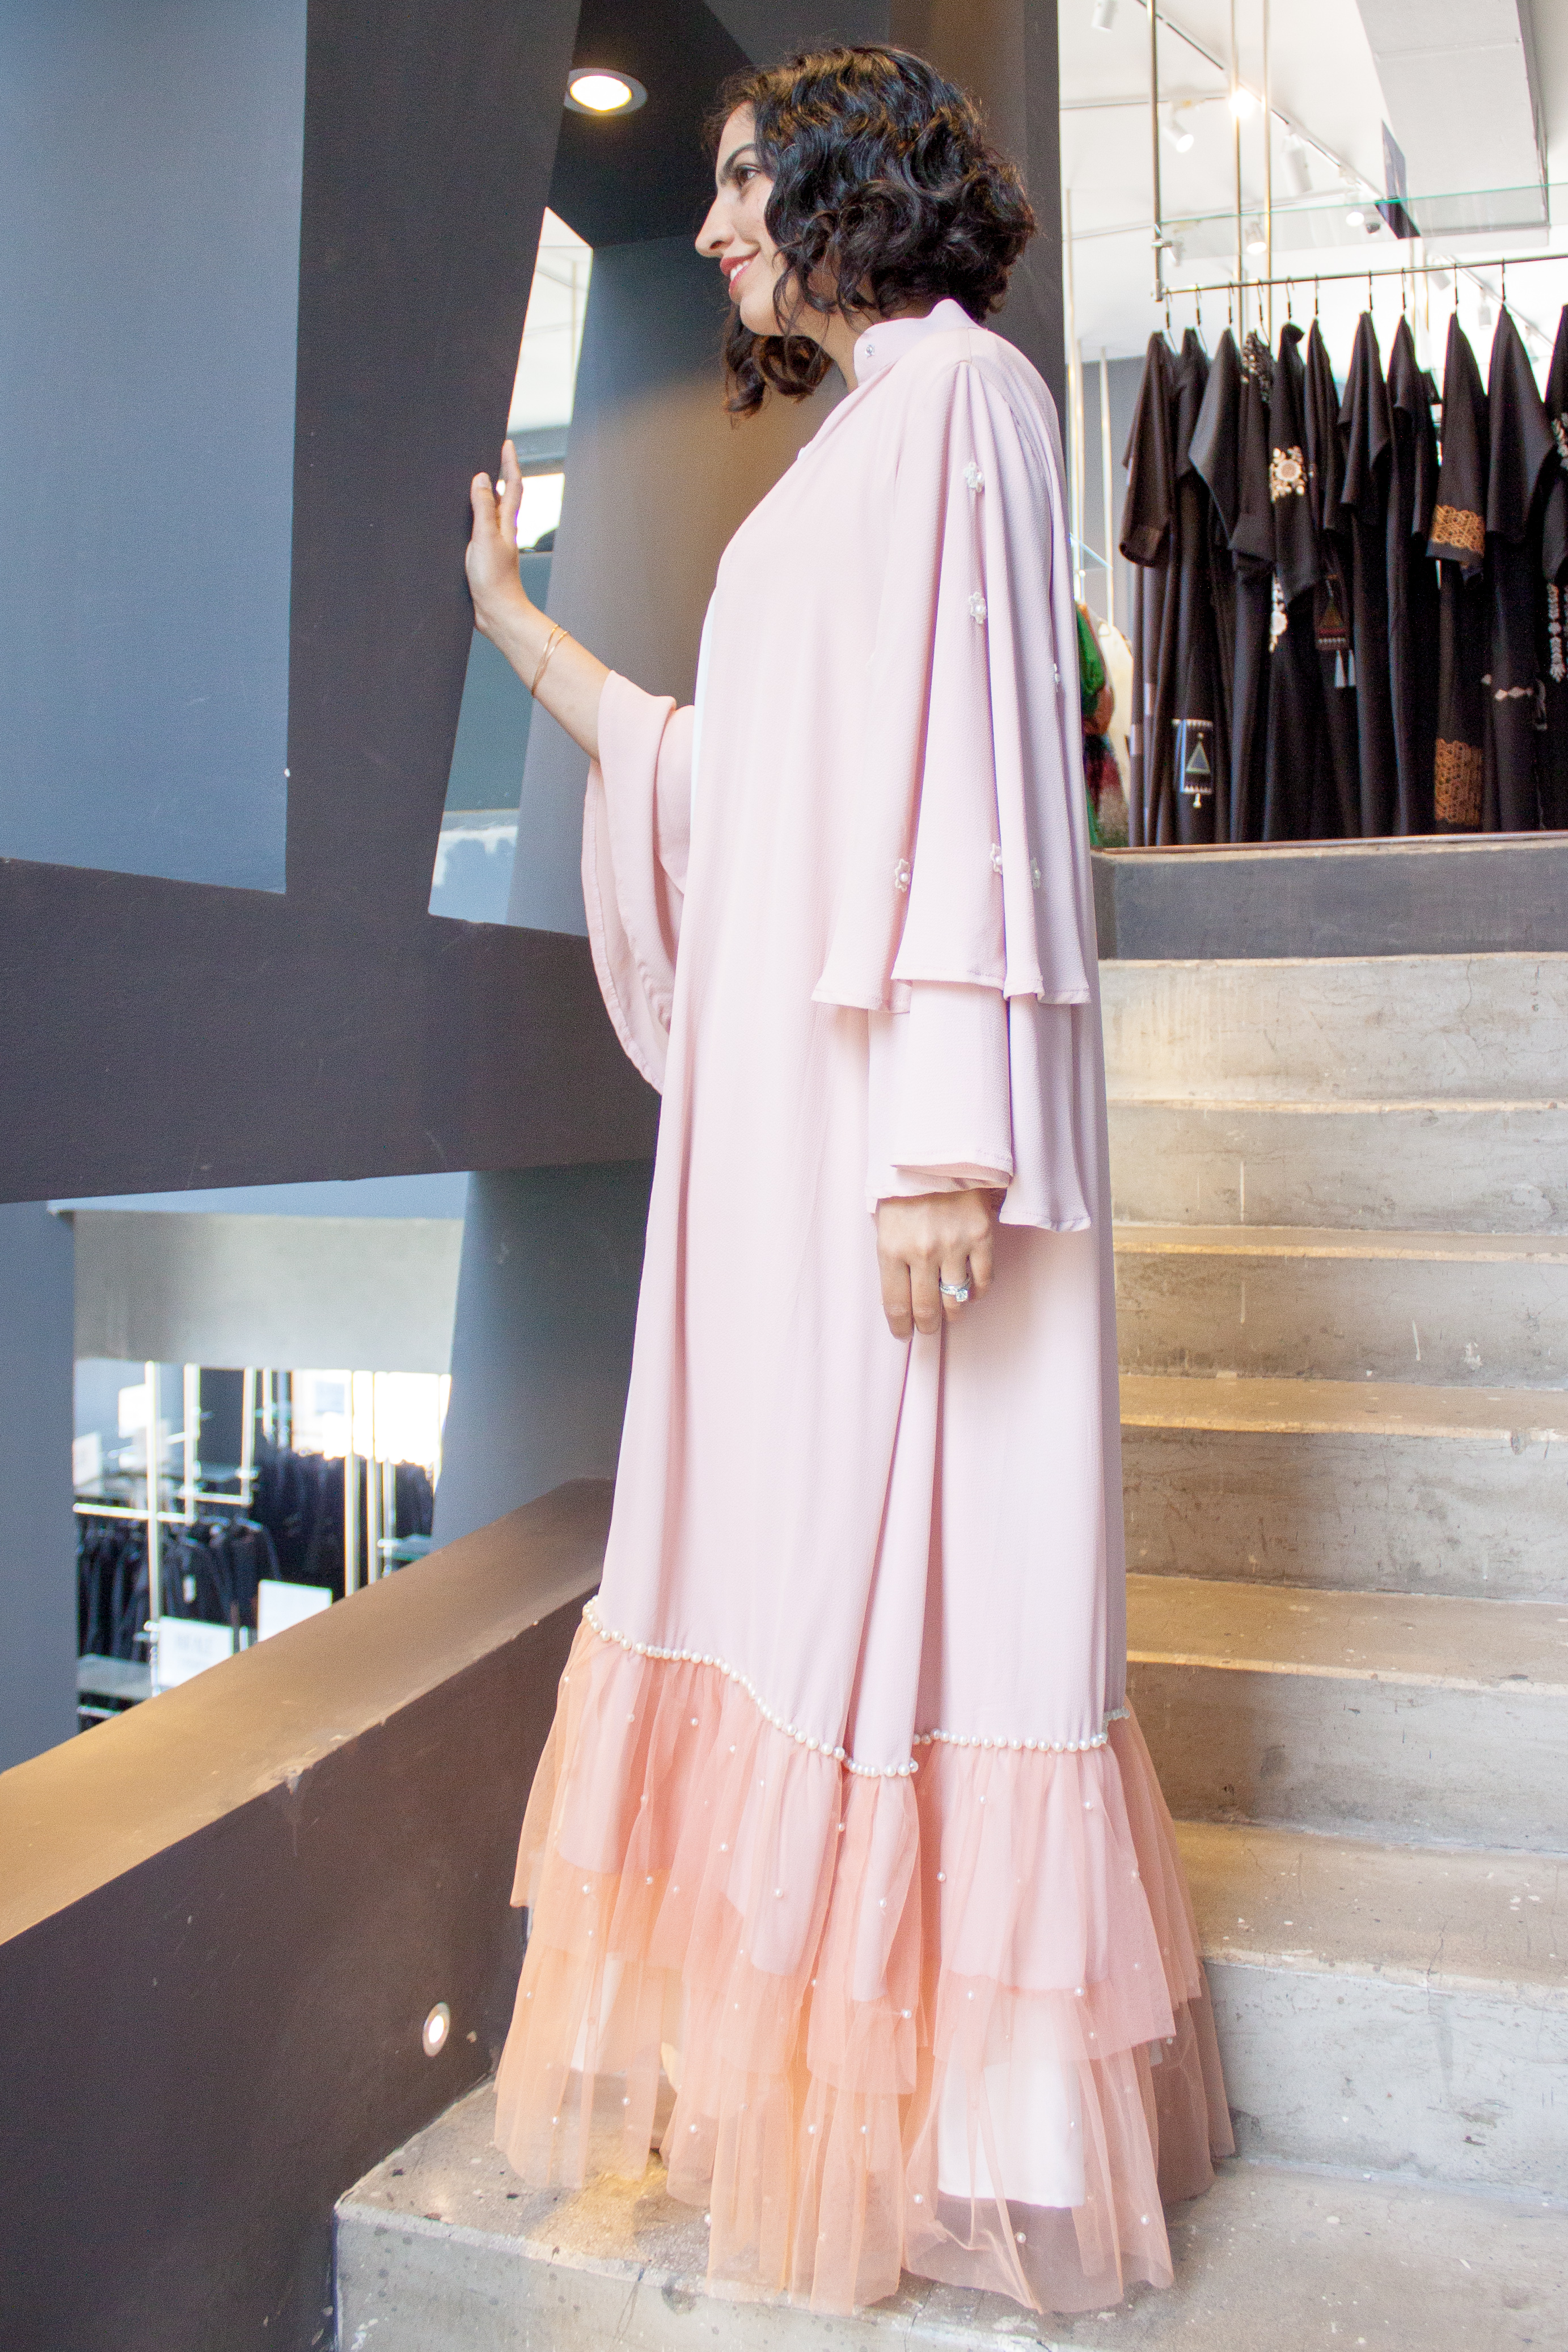 emaan qirat at the district pink abaya